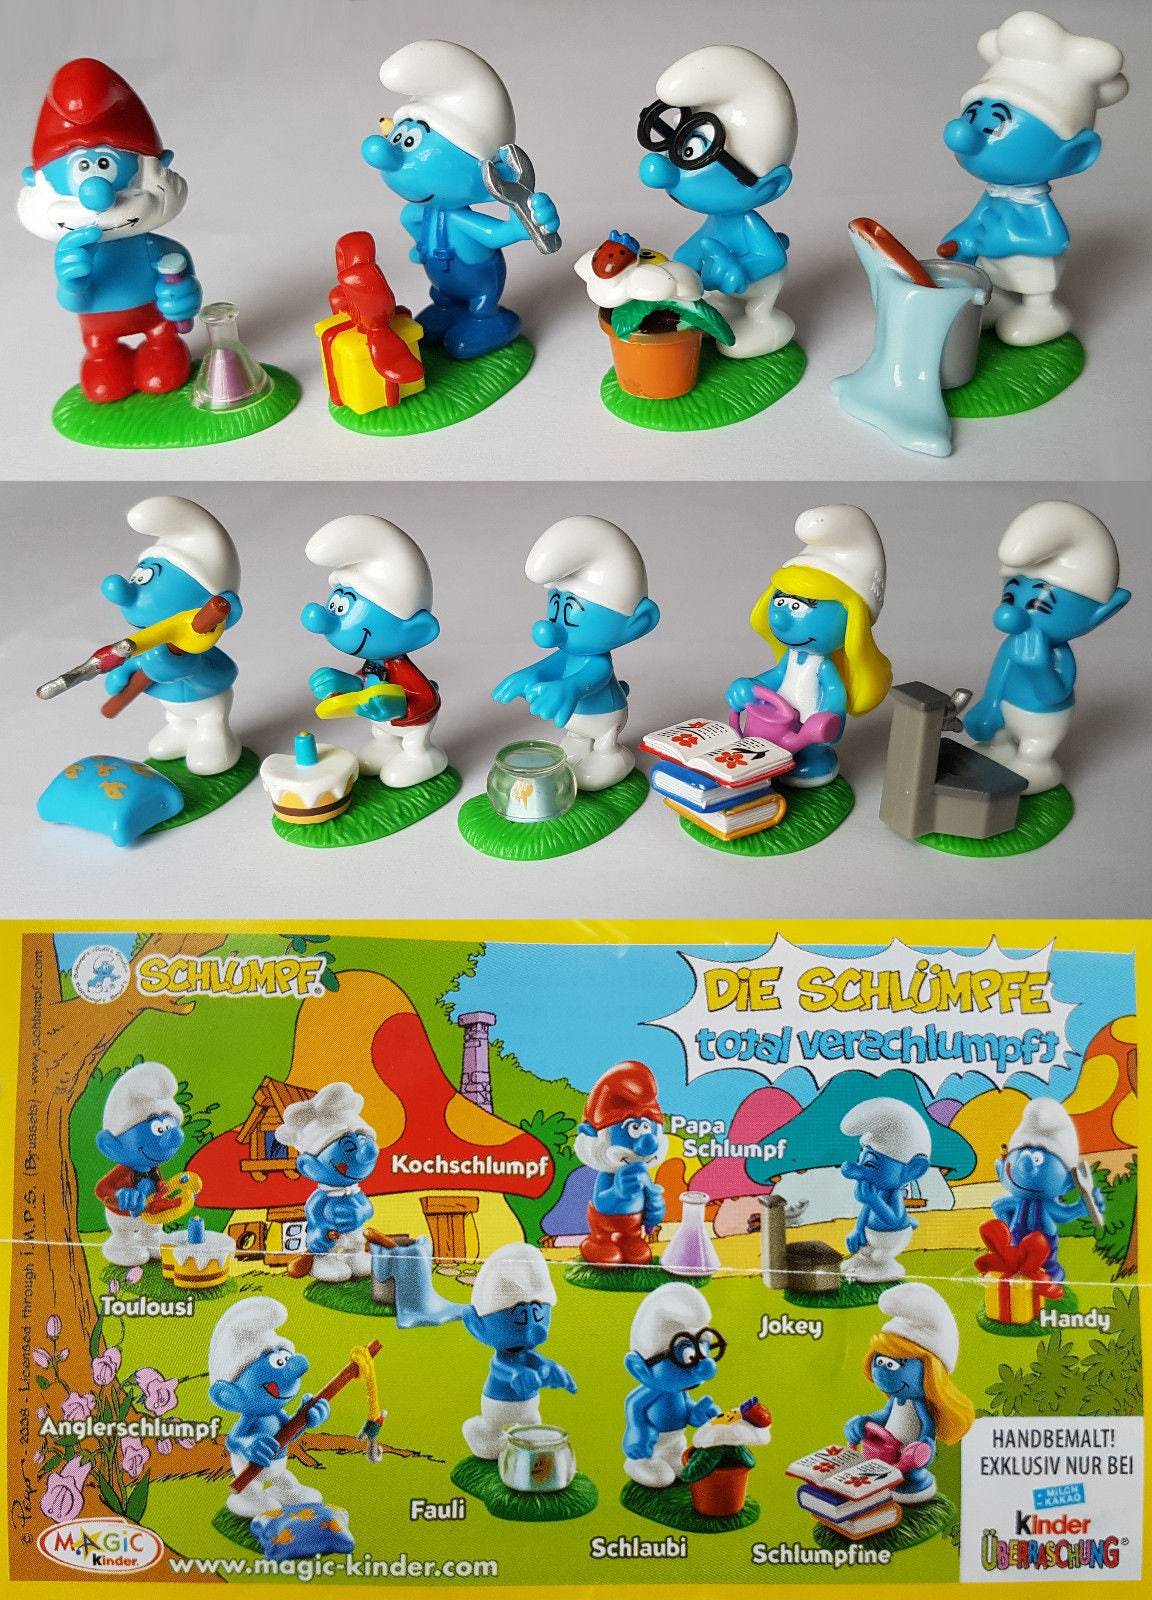 smurfs cake topper 9 figure set birthday party cupcakes figurines kinder surprise from